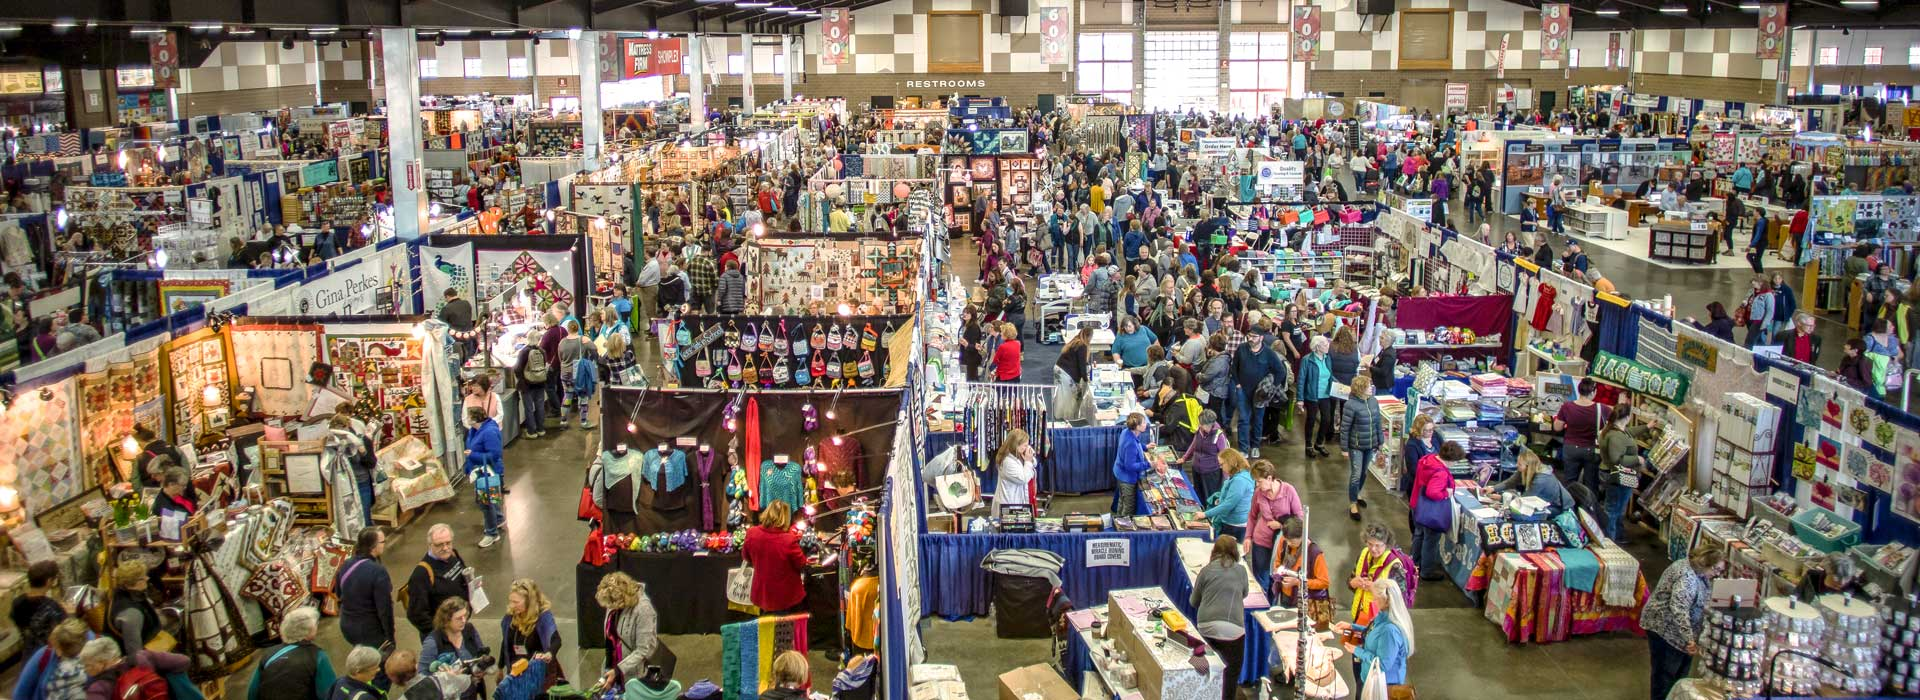 (Panoramic Image) Vendor booths in the Showplex building during the 2018 Expo.